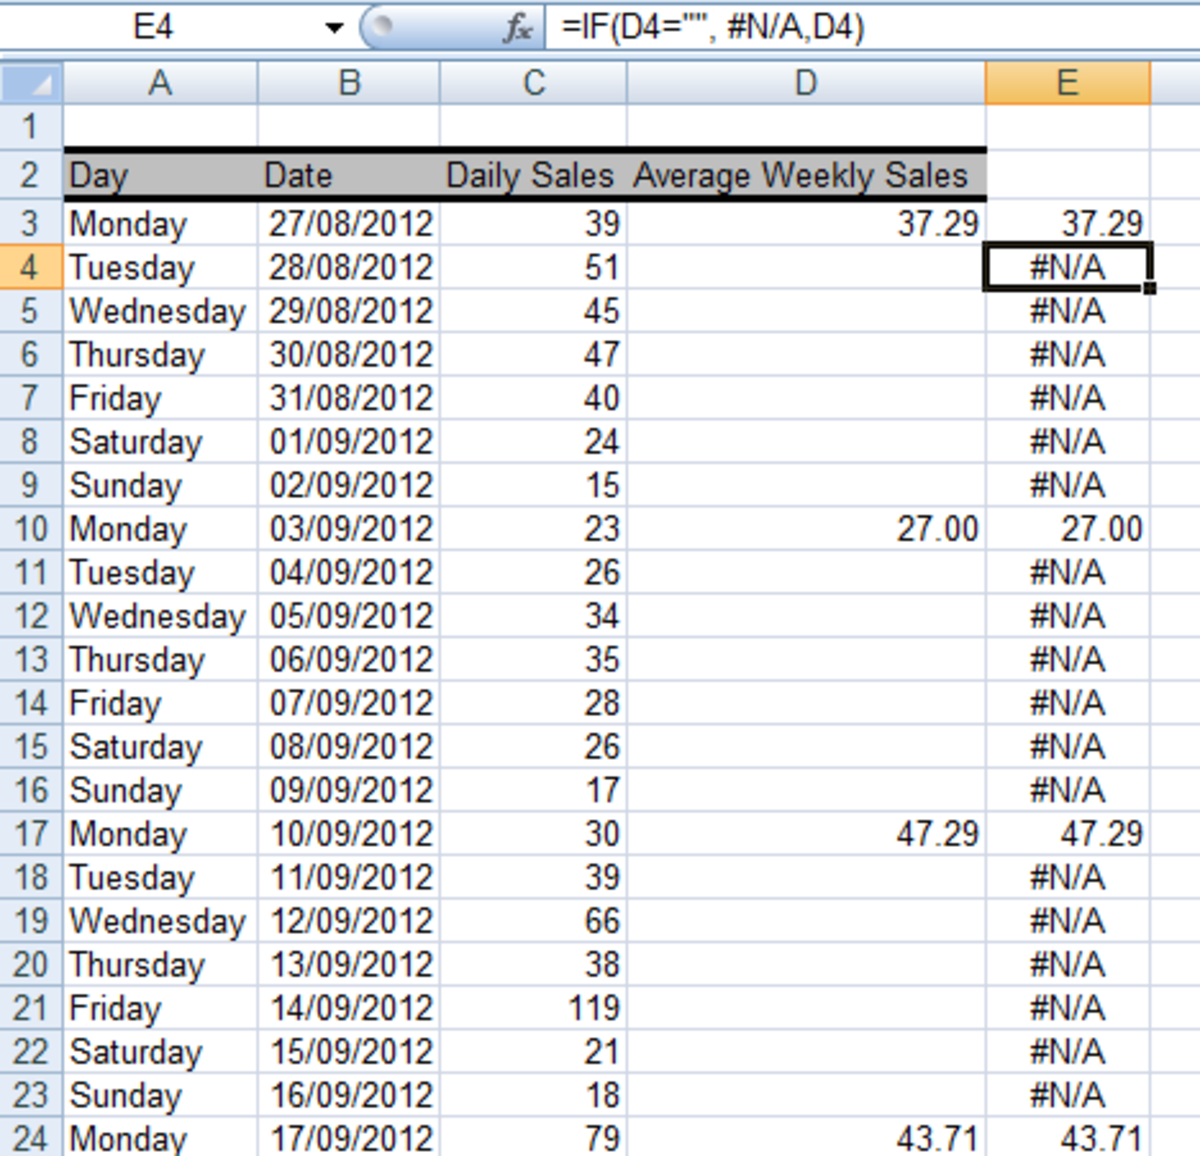 Ediblewildsus  Winning How To Get Excel  And  To Ignore Empty Cells In A Chart Or  With Fetching Using The If Function In A Formula To Convert Empty Cells To Na With Cute Conference Agenda Template Excel Also Printable Excel Sheet In Addition Edit Macros In Excel  And Excel  Formulas Not Working As Well As Calculate Time Worked In Excel Additionally Excel Formula To Count Rows From Turbofuturecom With Ediblewildsus  Fetching How To Get Excel  And  To Ignore Empty Cells In A Chart Or  With Cute Using The If Function In A Formula To Convert Empty Cells To Na And Winning Conference Agenda Template Excel Also Printable Excel Sheet In Addition Edit Macros In Excel  From Turbofuturecom